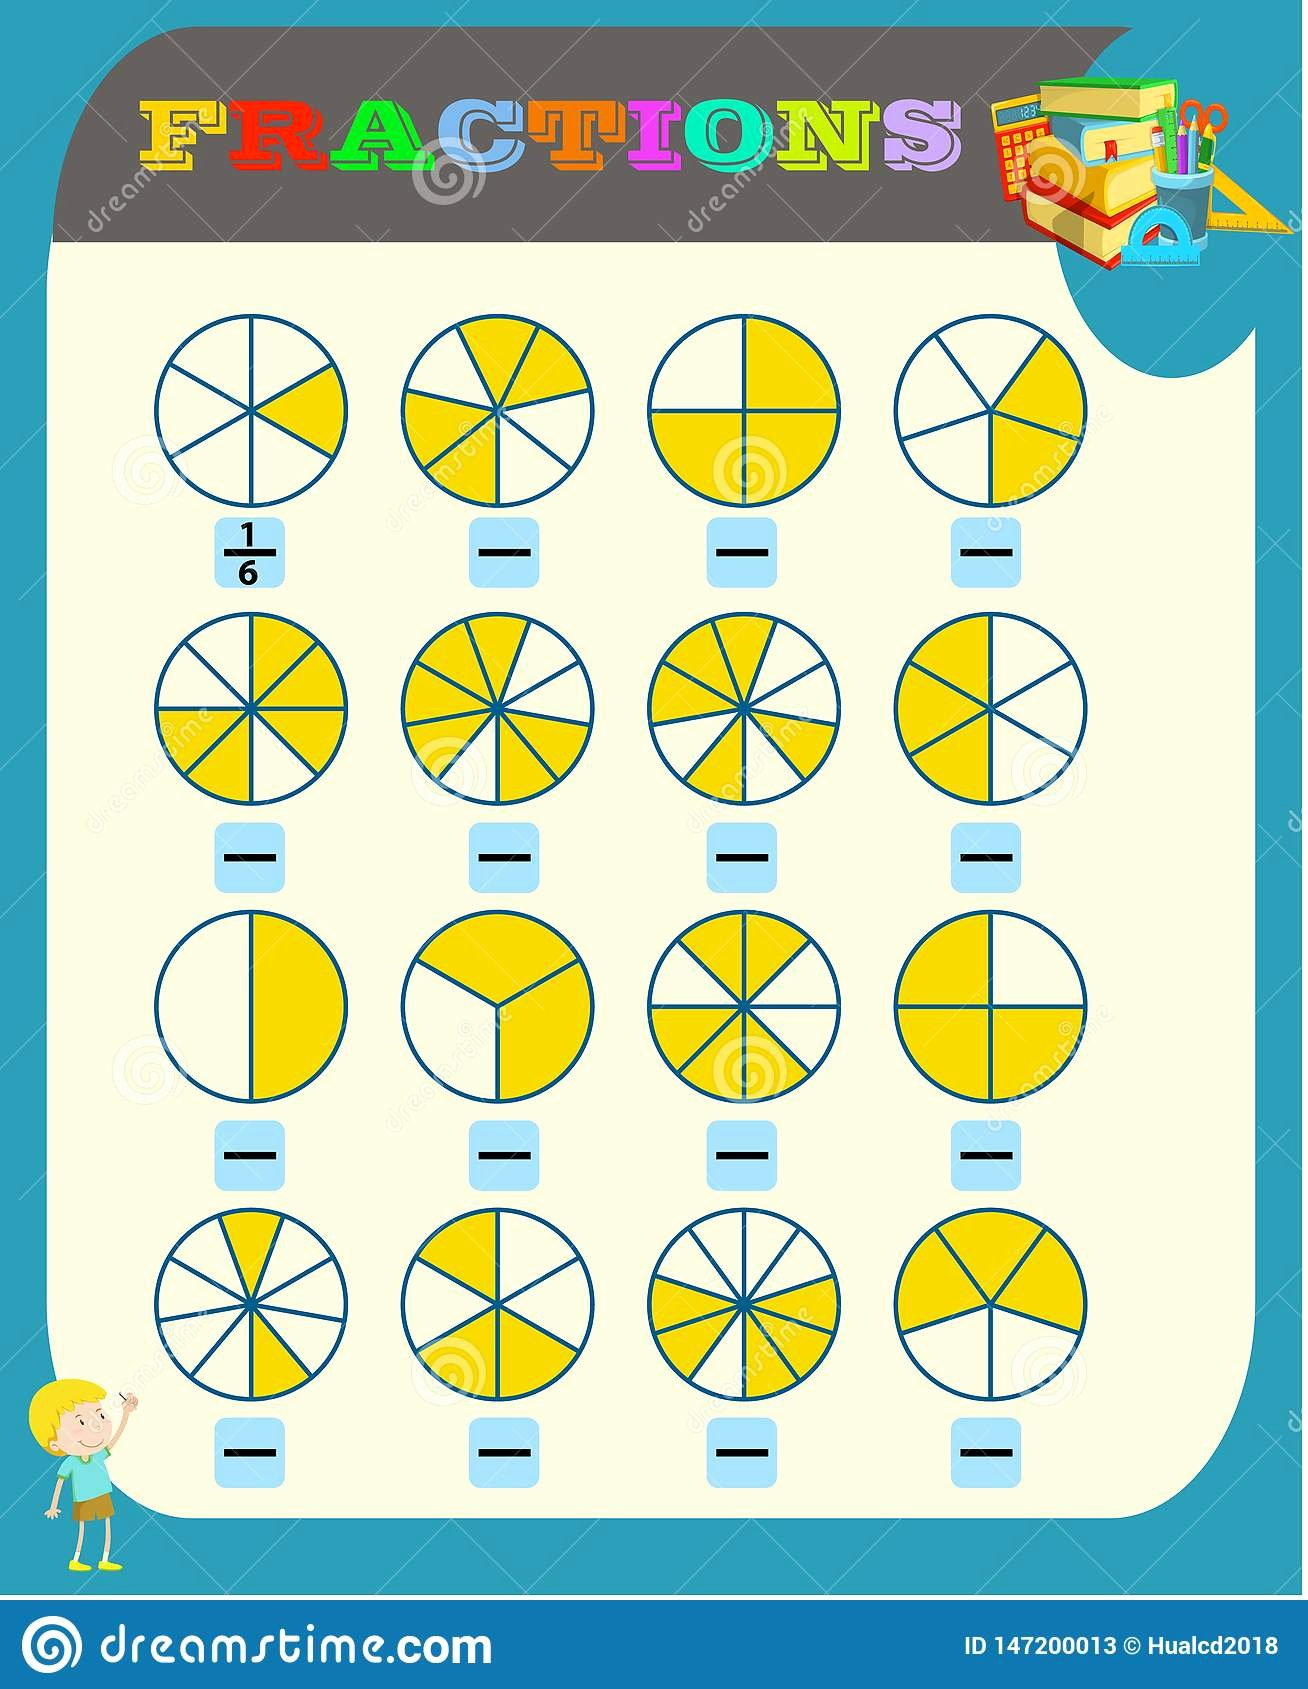 Fraction Worksheets for Preschoolers Lovely Circle the Correct Fraction Mathematics Math Worksheet for